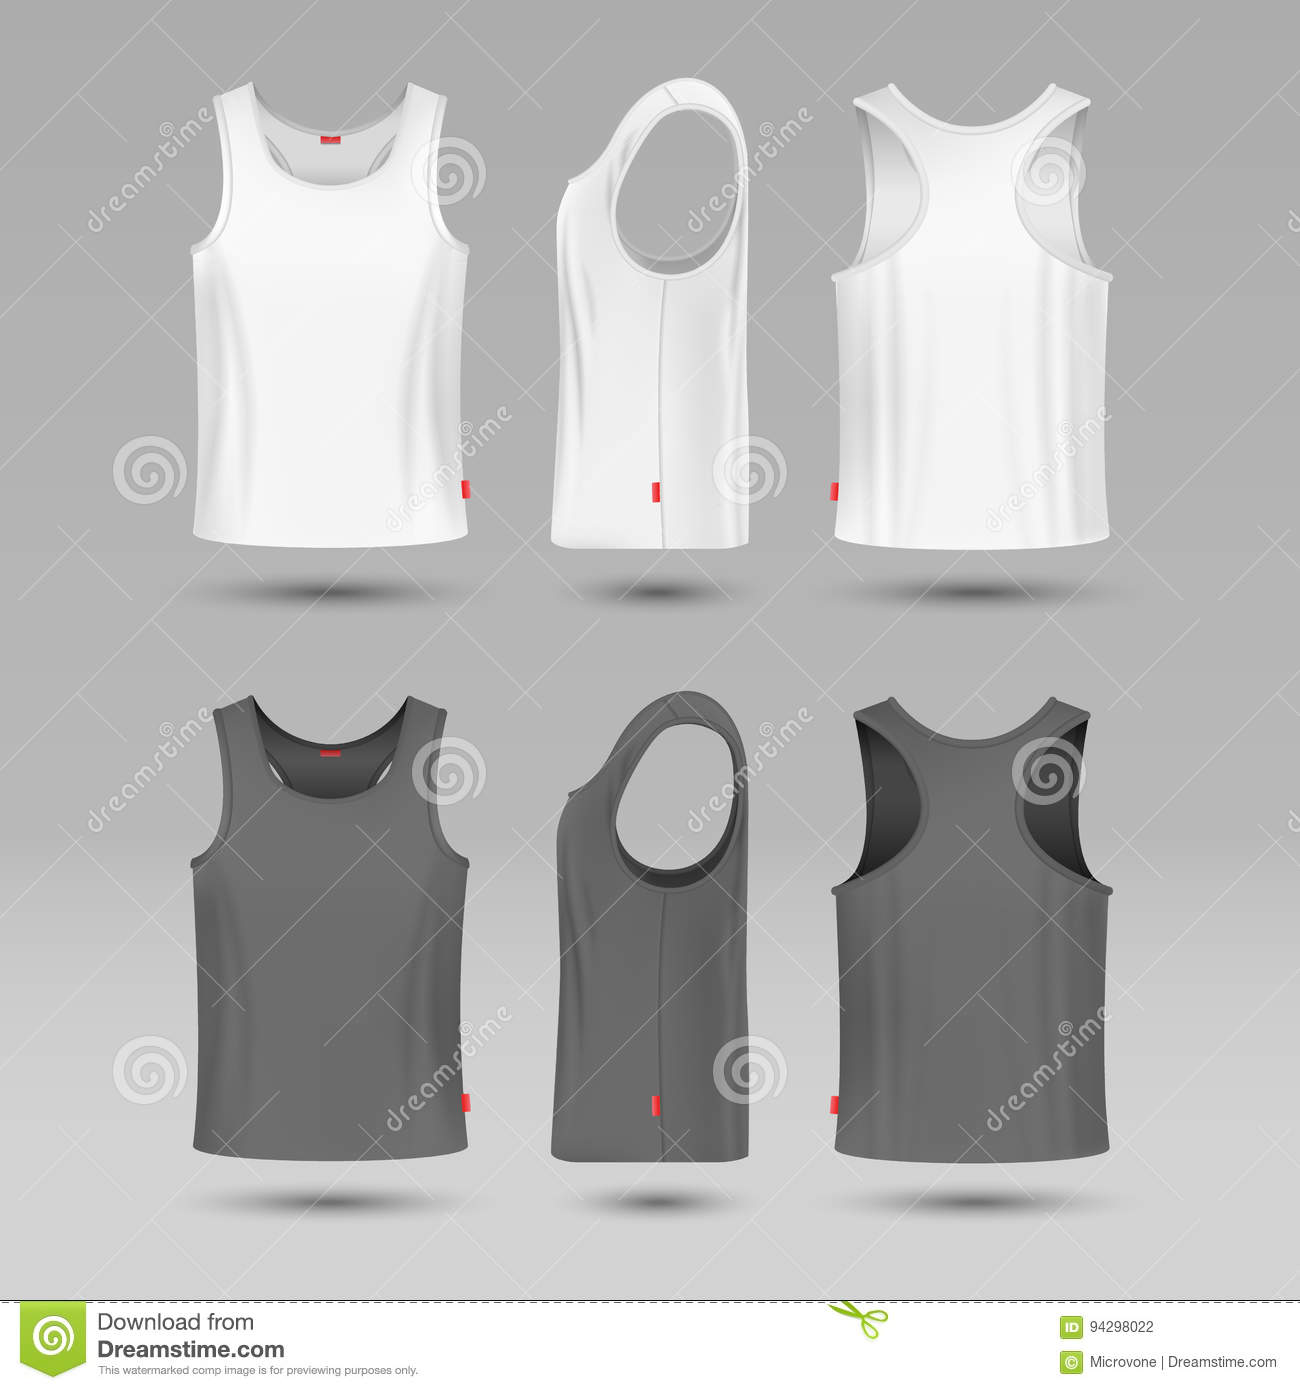 c791a770bceb9 Royalty-Free Vector. Mans white blank tank singlet. Male shirt without  sleeves vector template